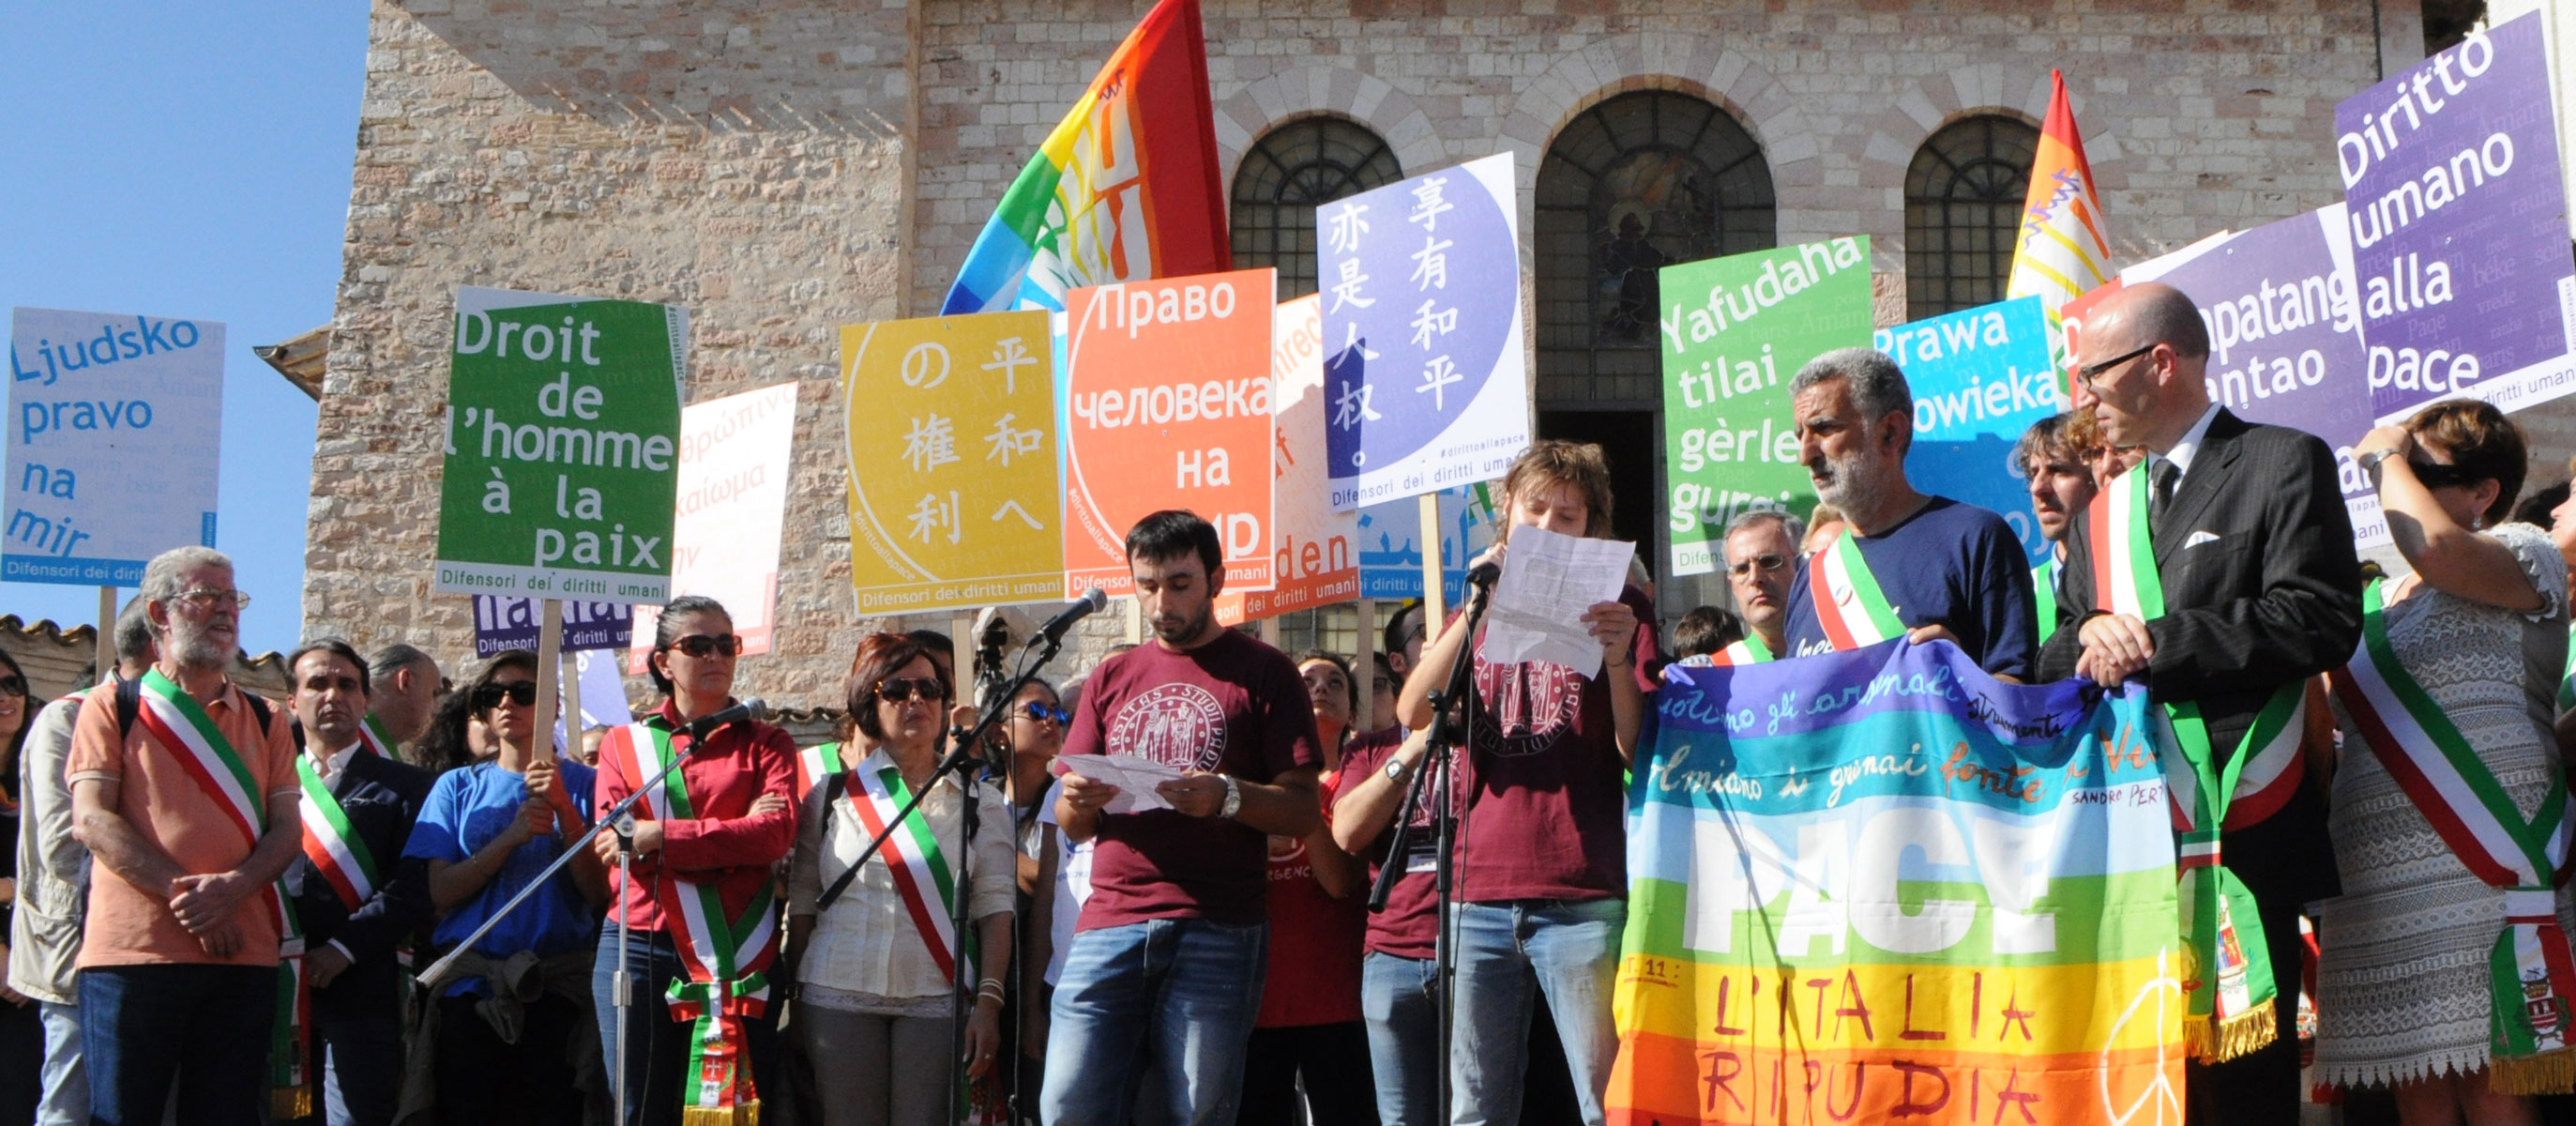 INCONTRI GAY PISTOIA GAY BELLI NUDI